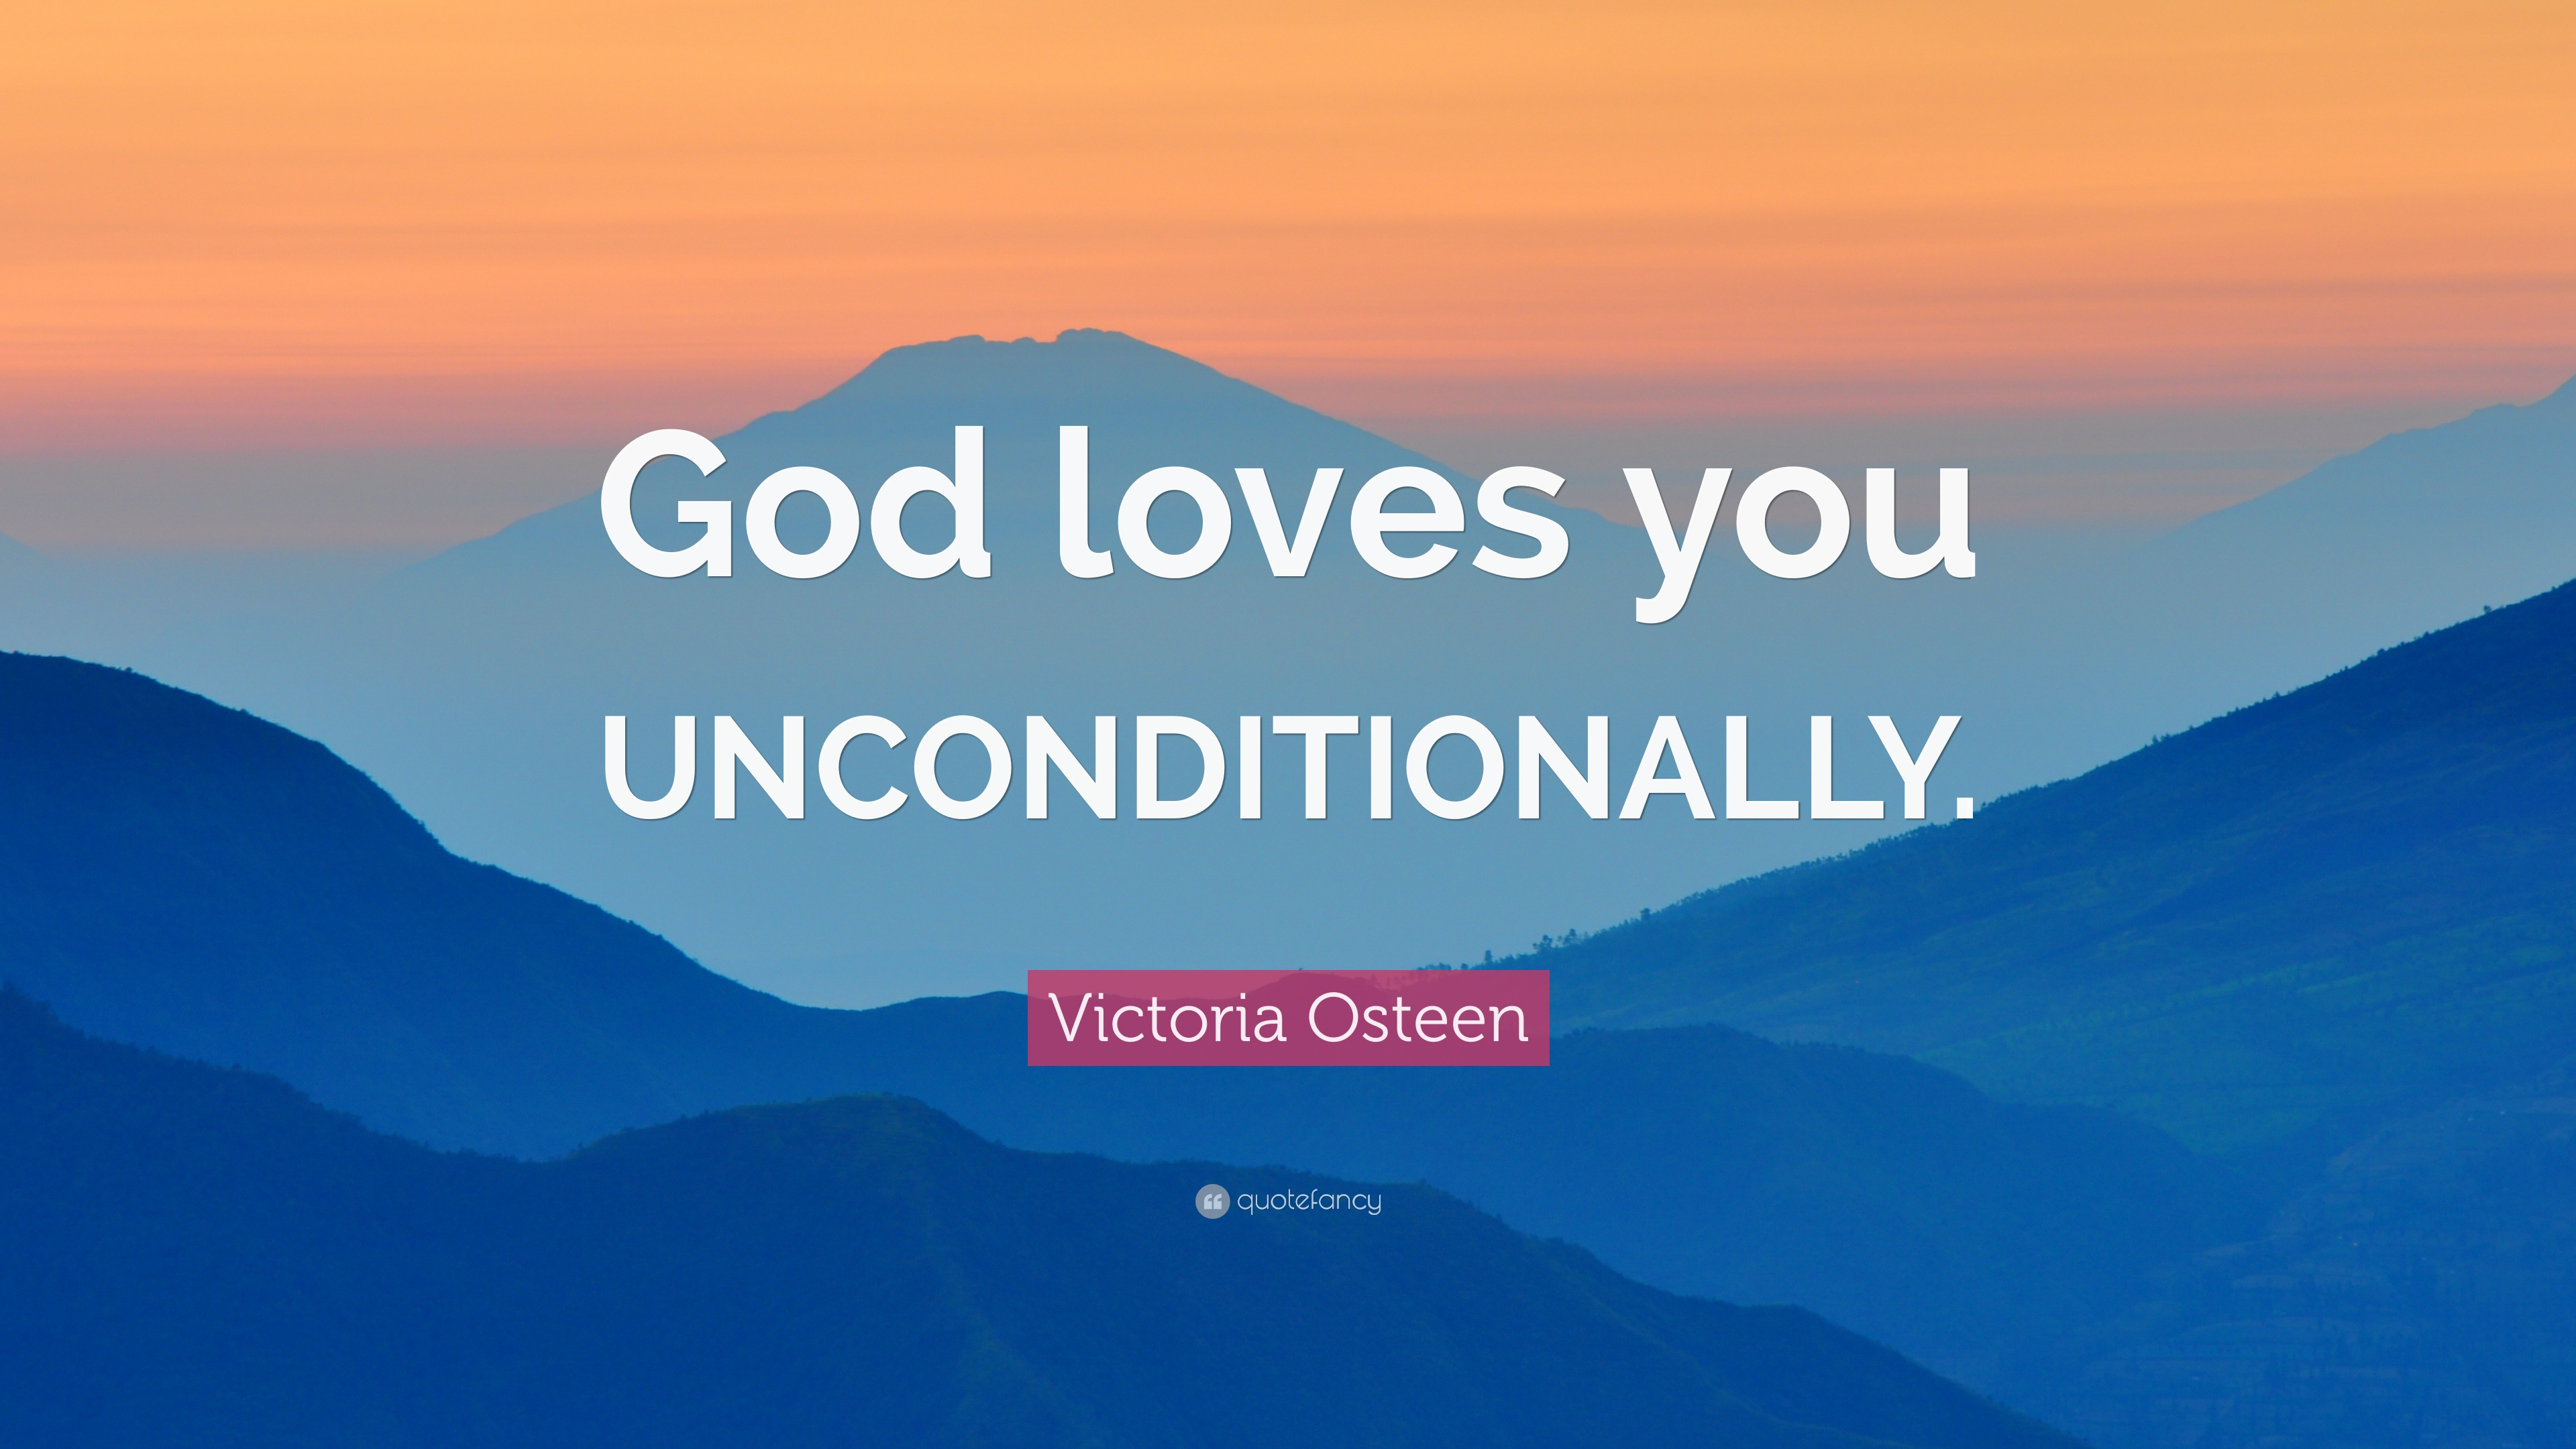 """Victoria Osteen Quote """"God loves you UNCONDITIONALLY """""""